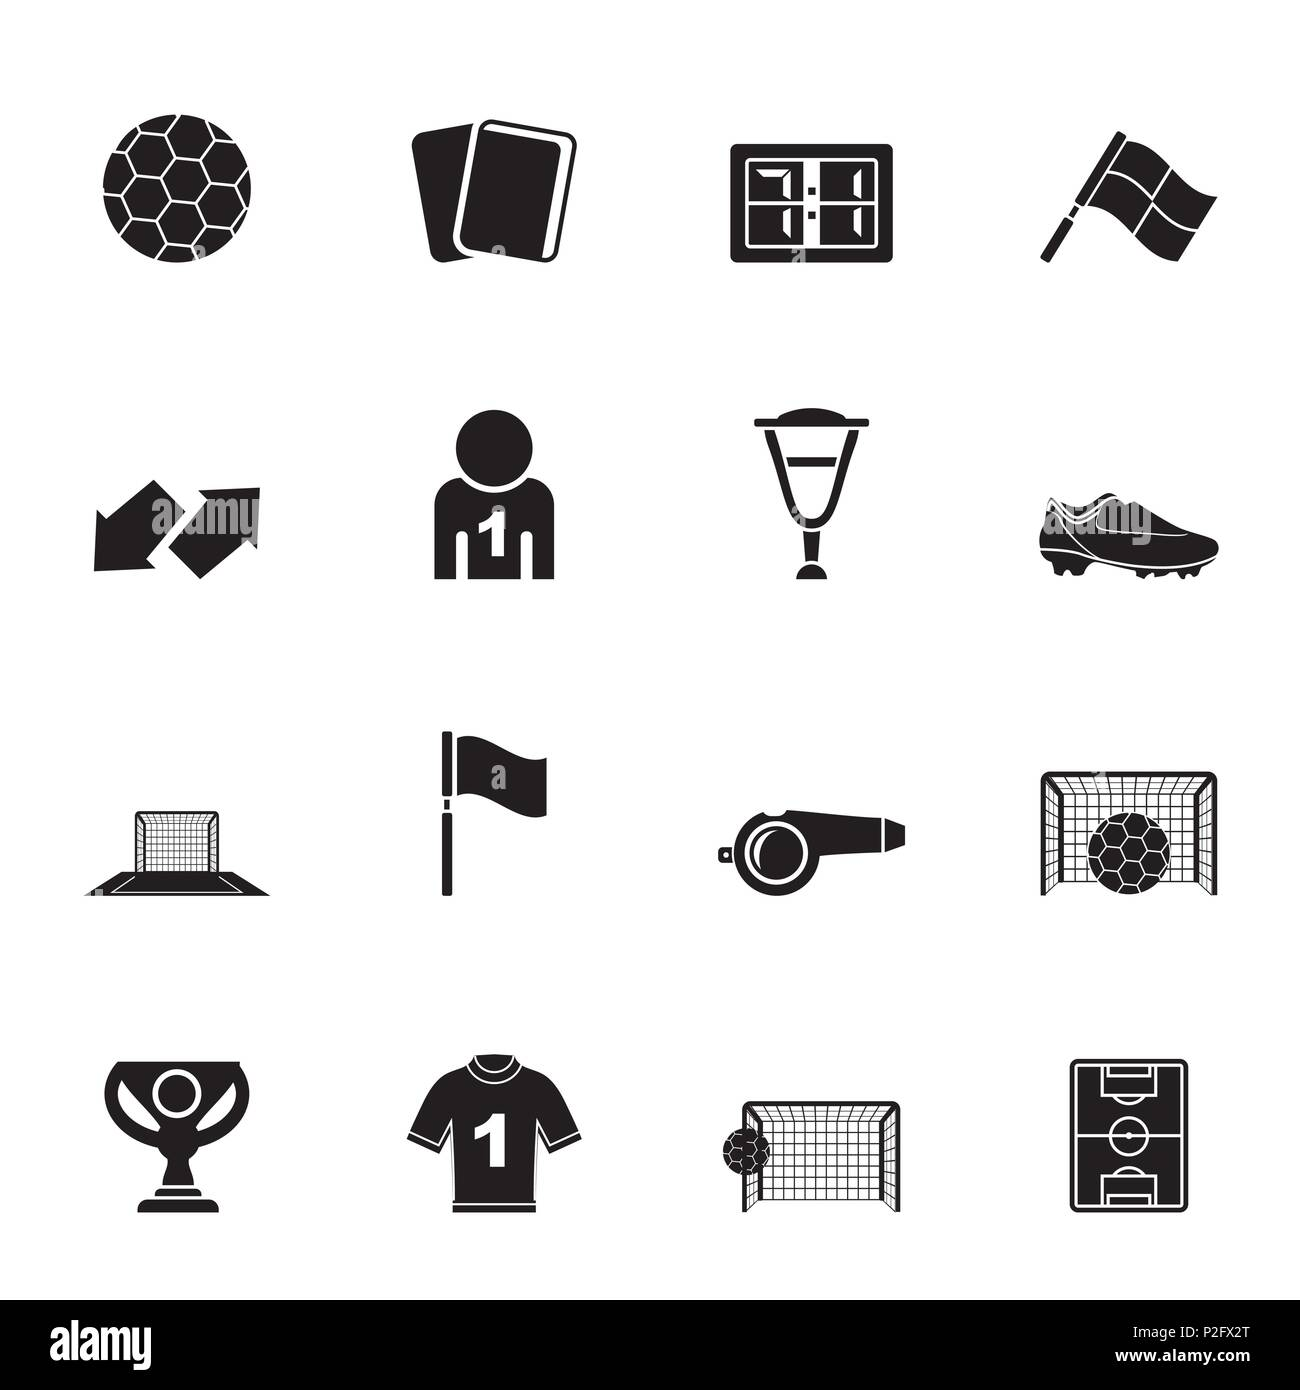 Silhouette football, soccer and sport icons - vector icon set - Stock Vector